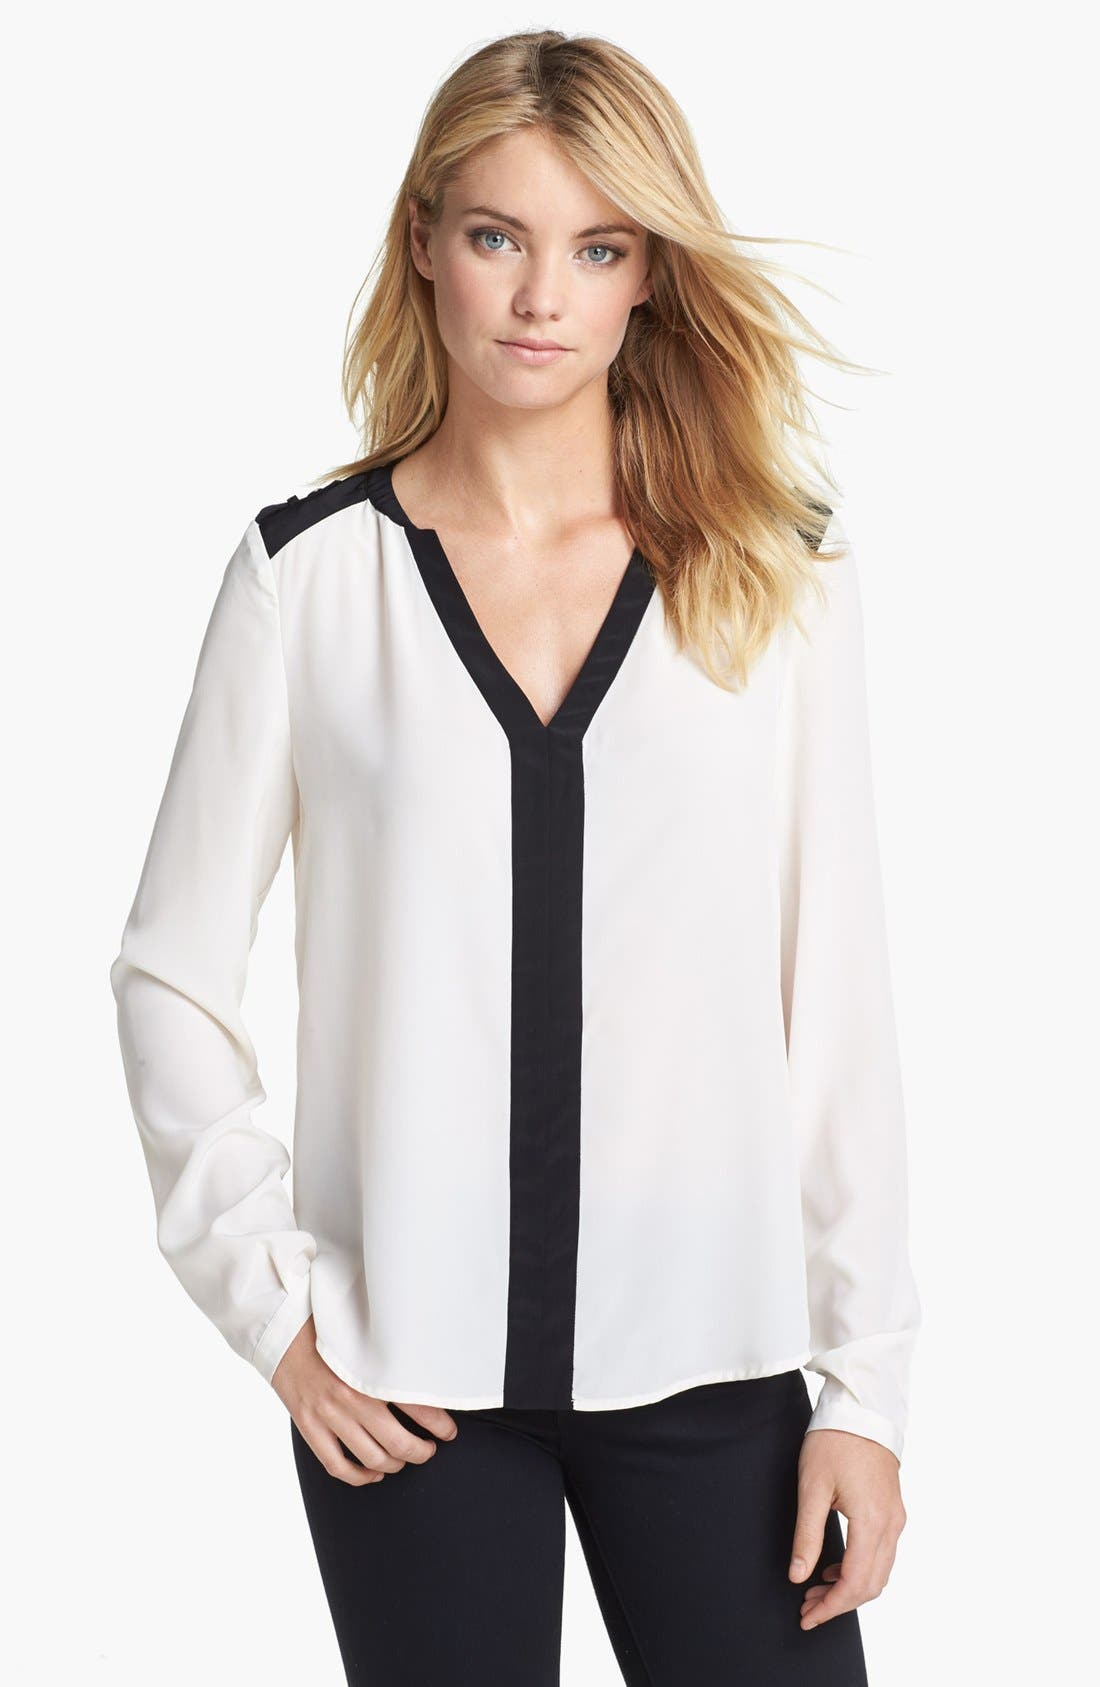 Alternate Image 1 Selected - Vince Camuto Epaulet Colorblock Blouse (Online Only)